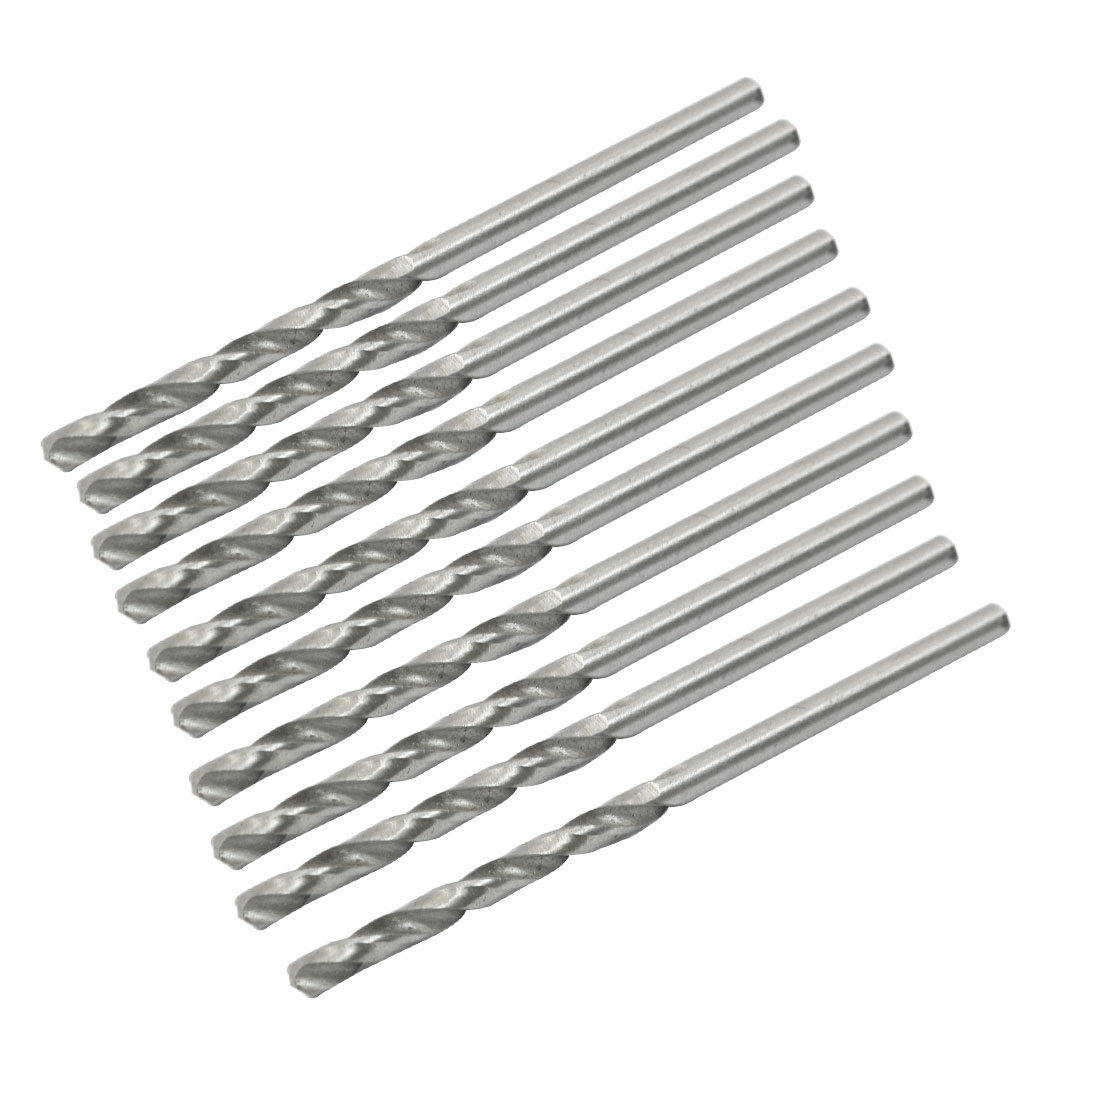 High Speed Steel 2.55mm Dia Split Point 58mm Long Twist Drill Bits 10 Pcs